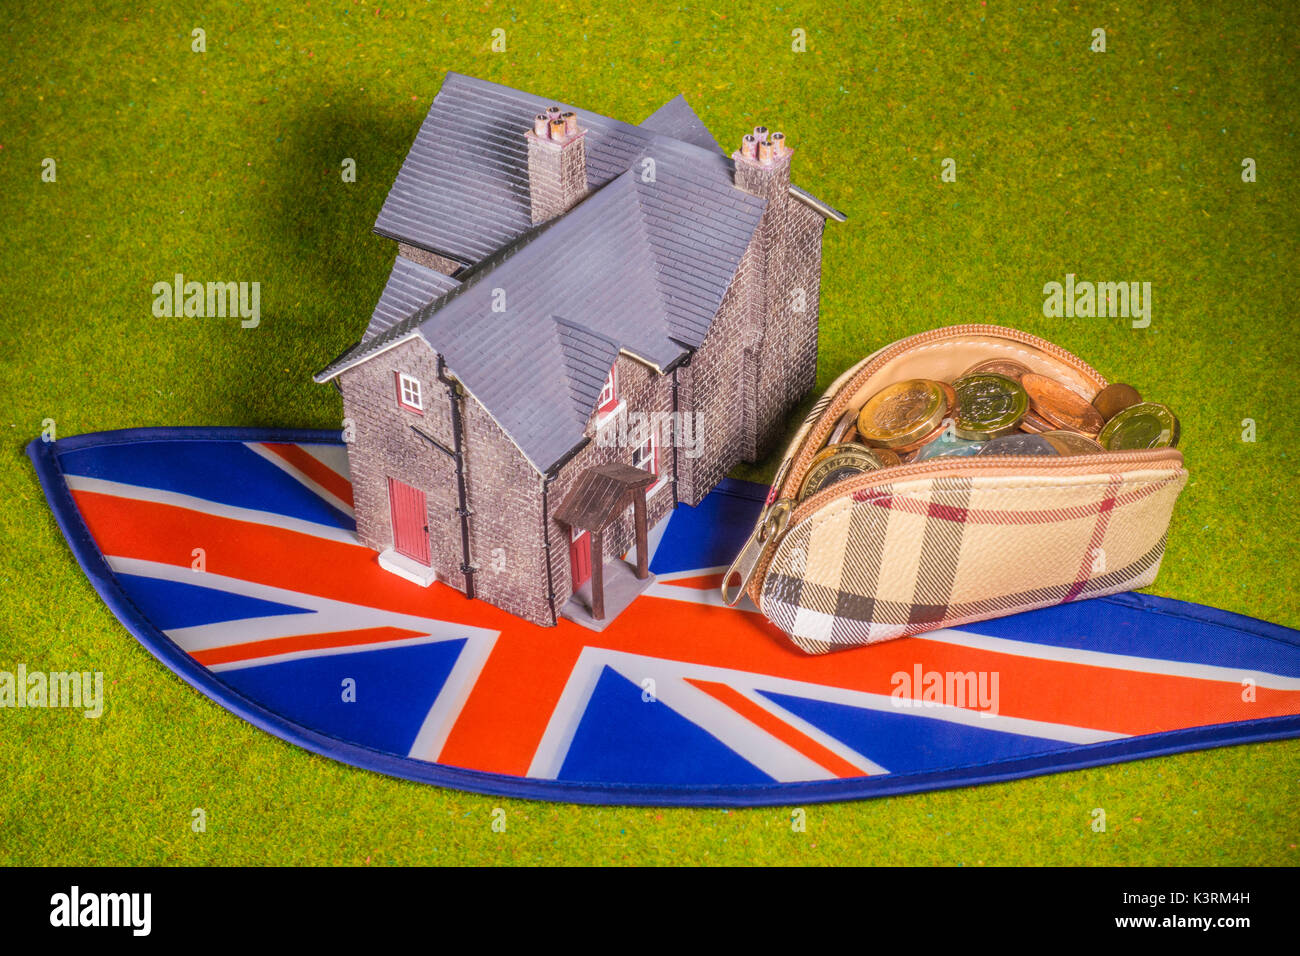 Model house, purse with sterling coins (with new £1) and Union Jack, to depict costs like a UK interest rate rise, home buying, renting, moving, etc. - Stock Image